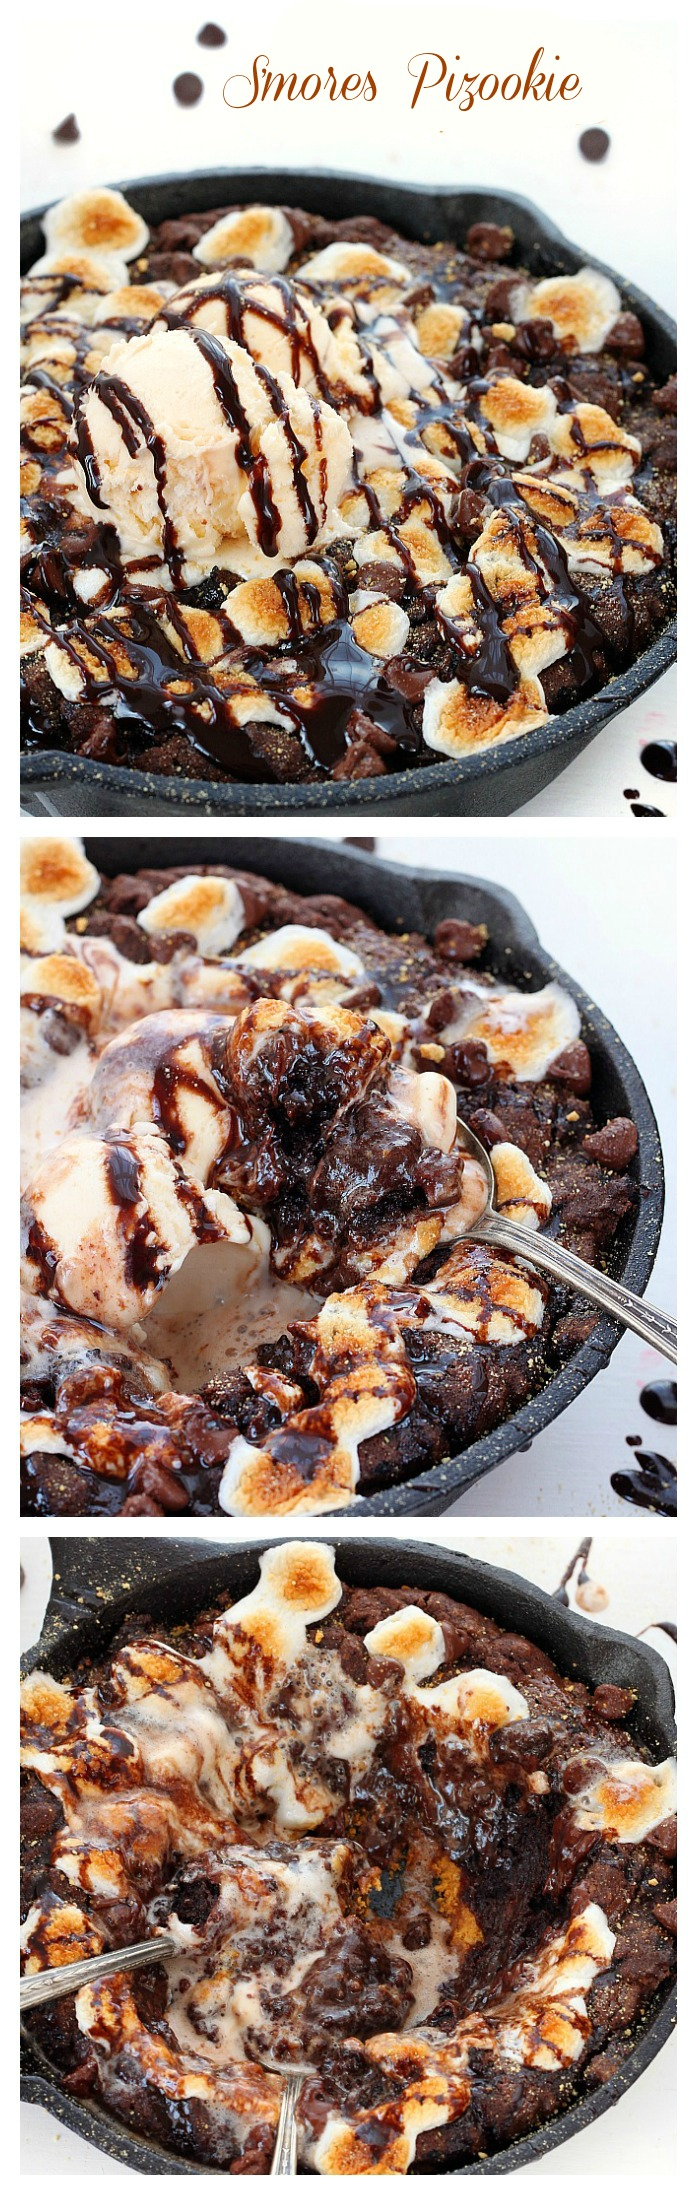 It's a pizza? It's a cookie? It's a triple chocolate smores pizookie baked in a skillet and topped with ice-cream - heaven in every bite!